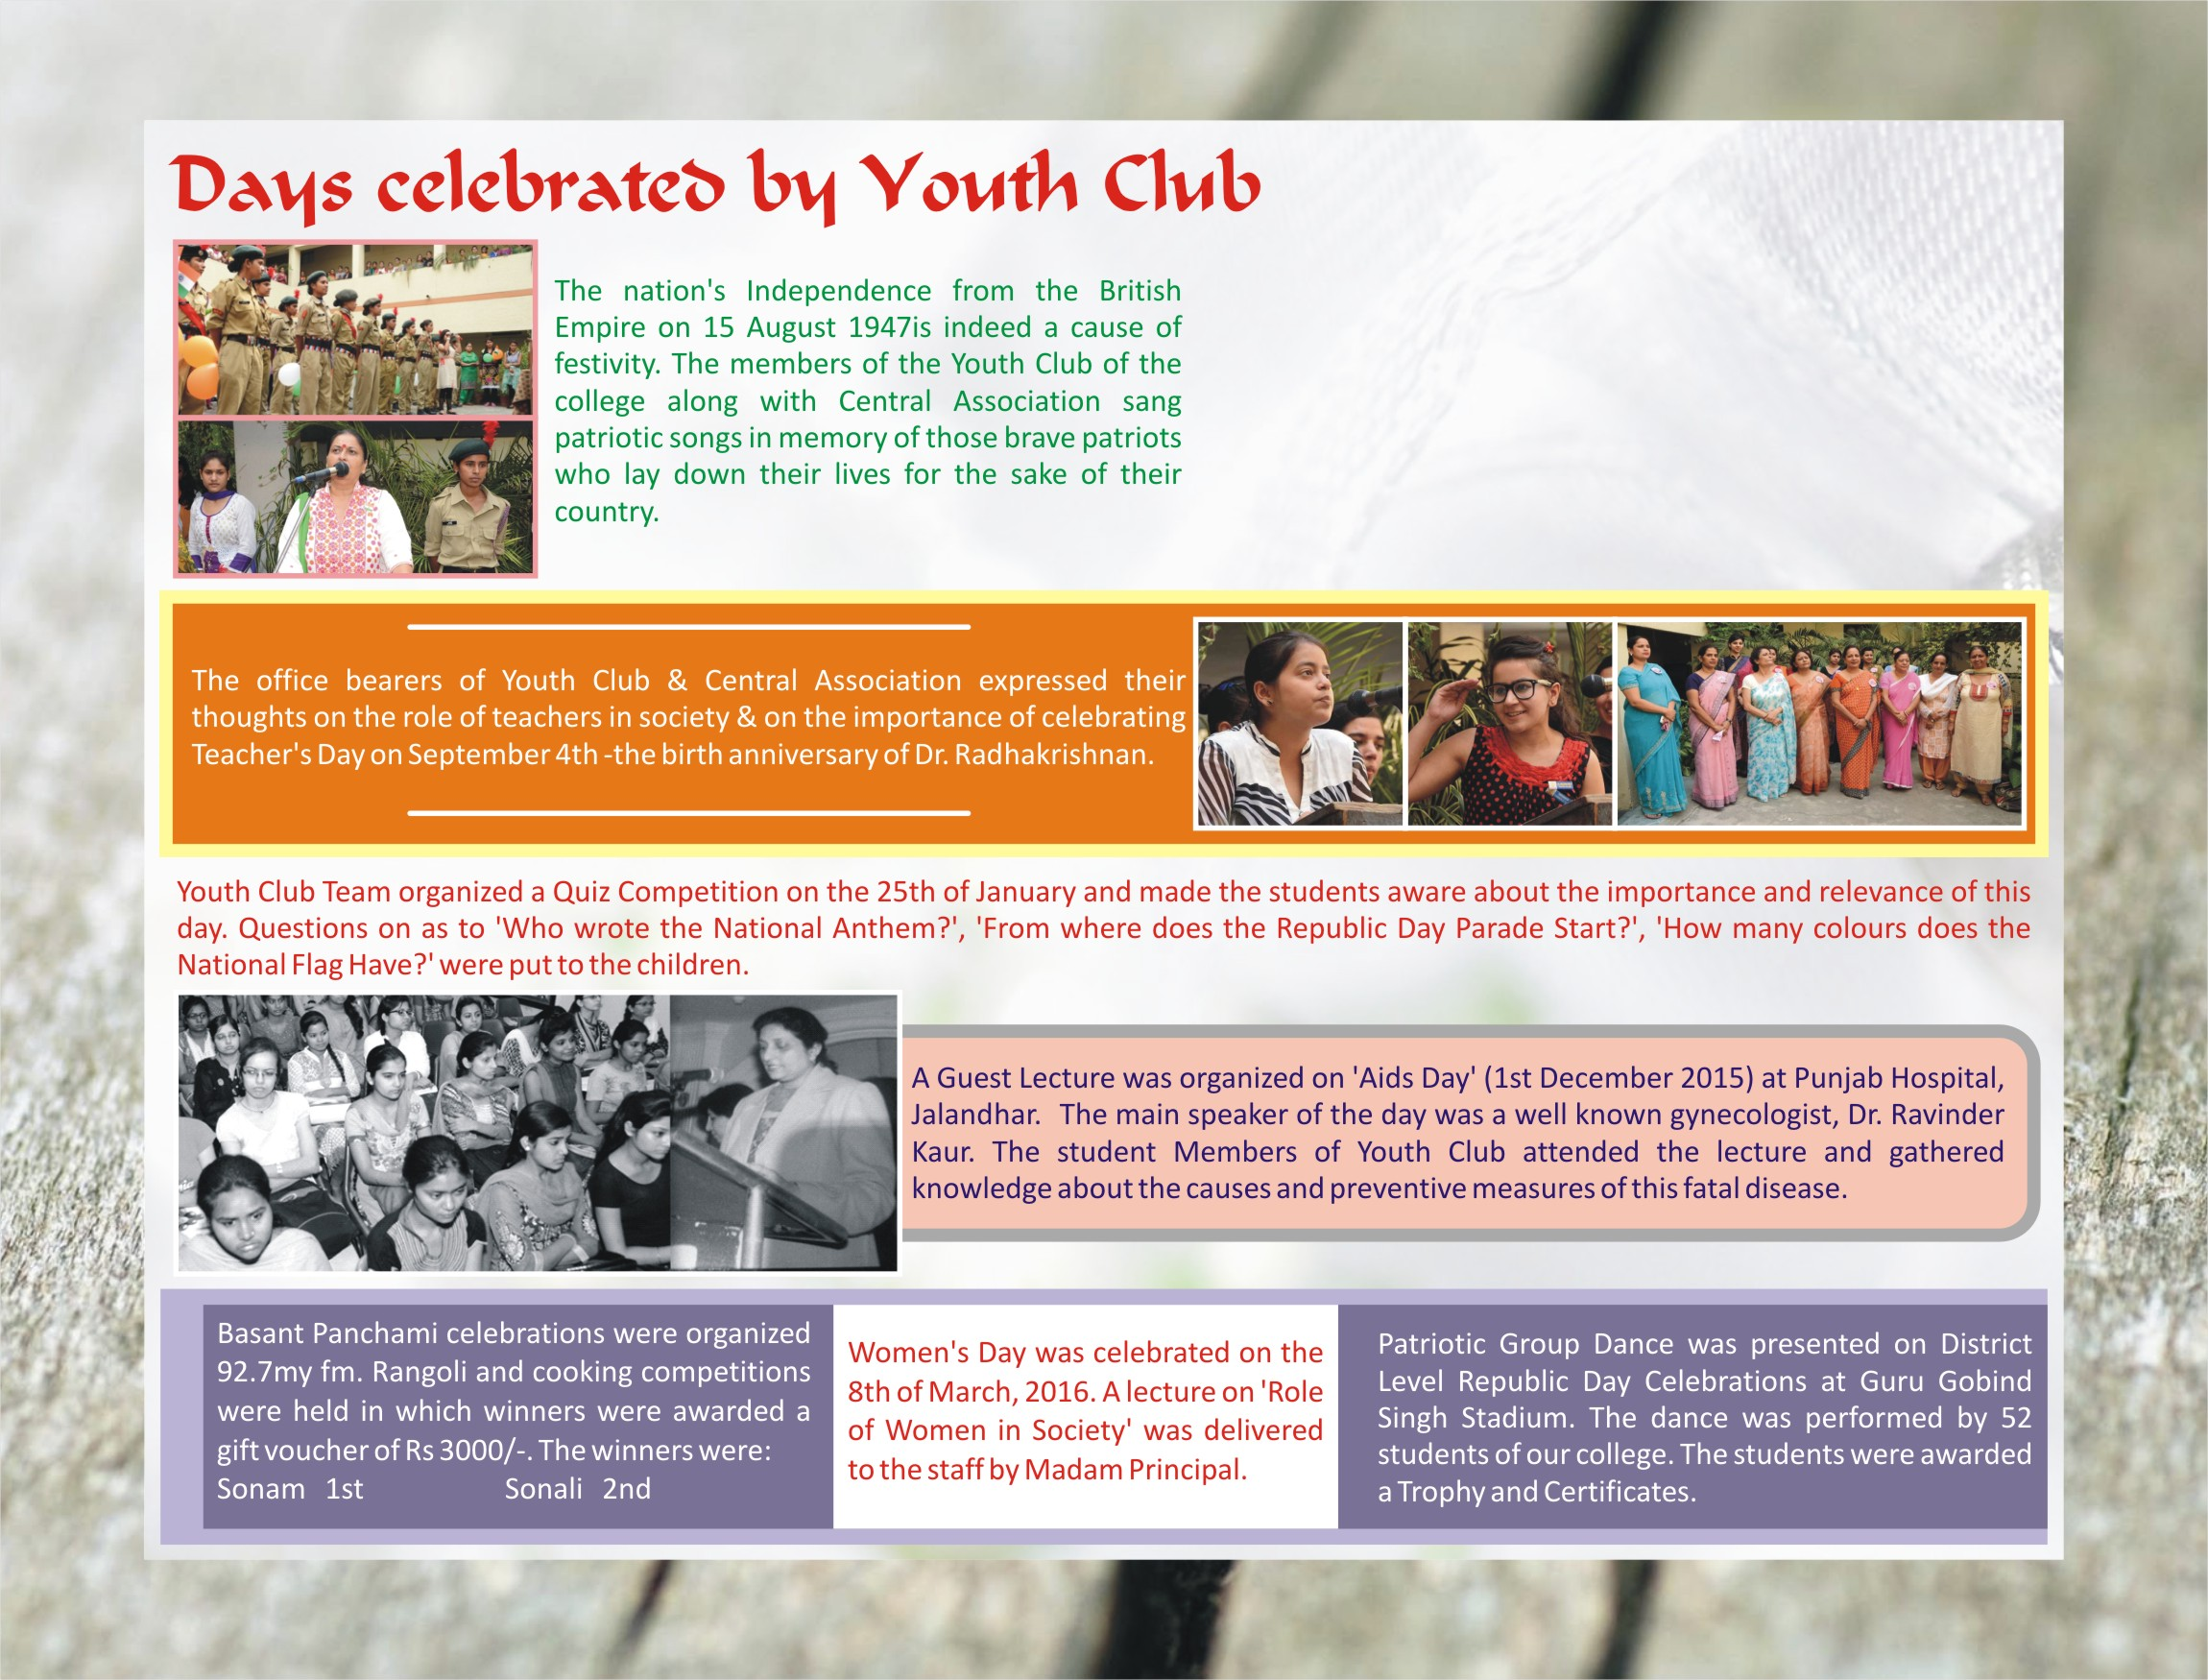 Days Celebrated by Youth Club